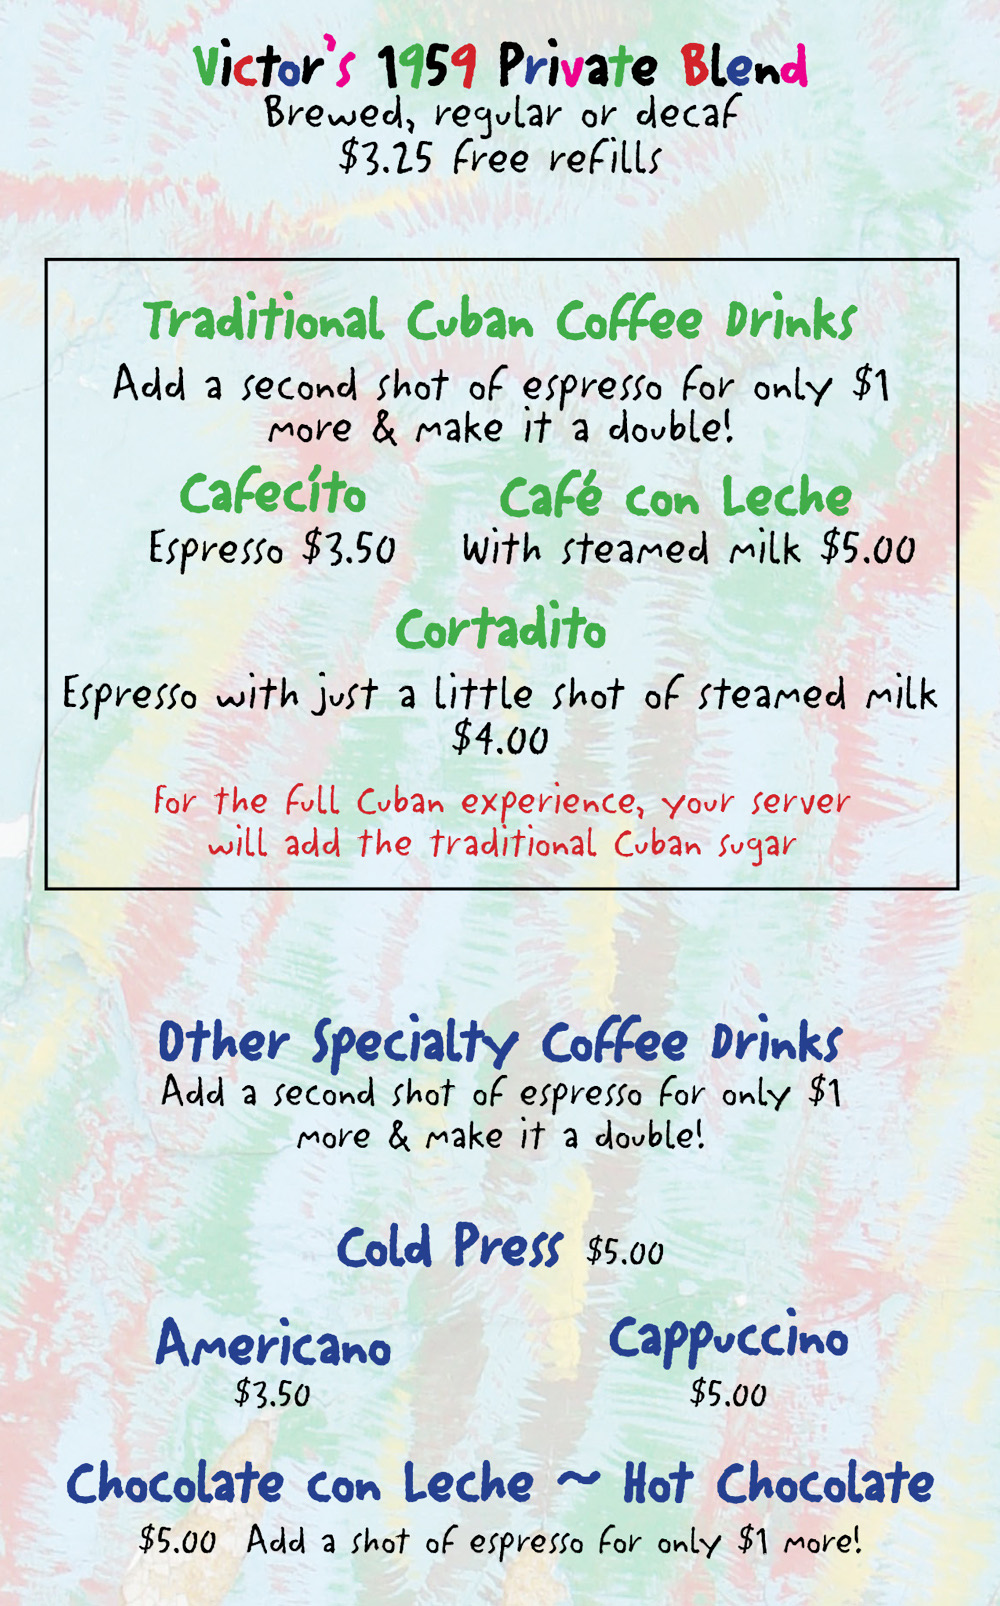 Victor's-Menu-coffee-&-tea-2018_page_1.jpg